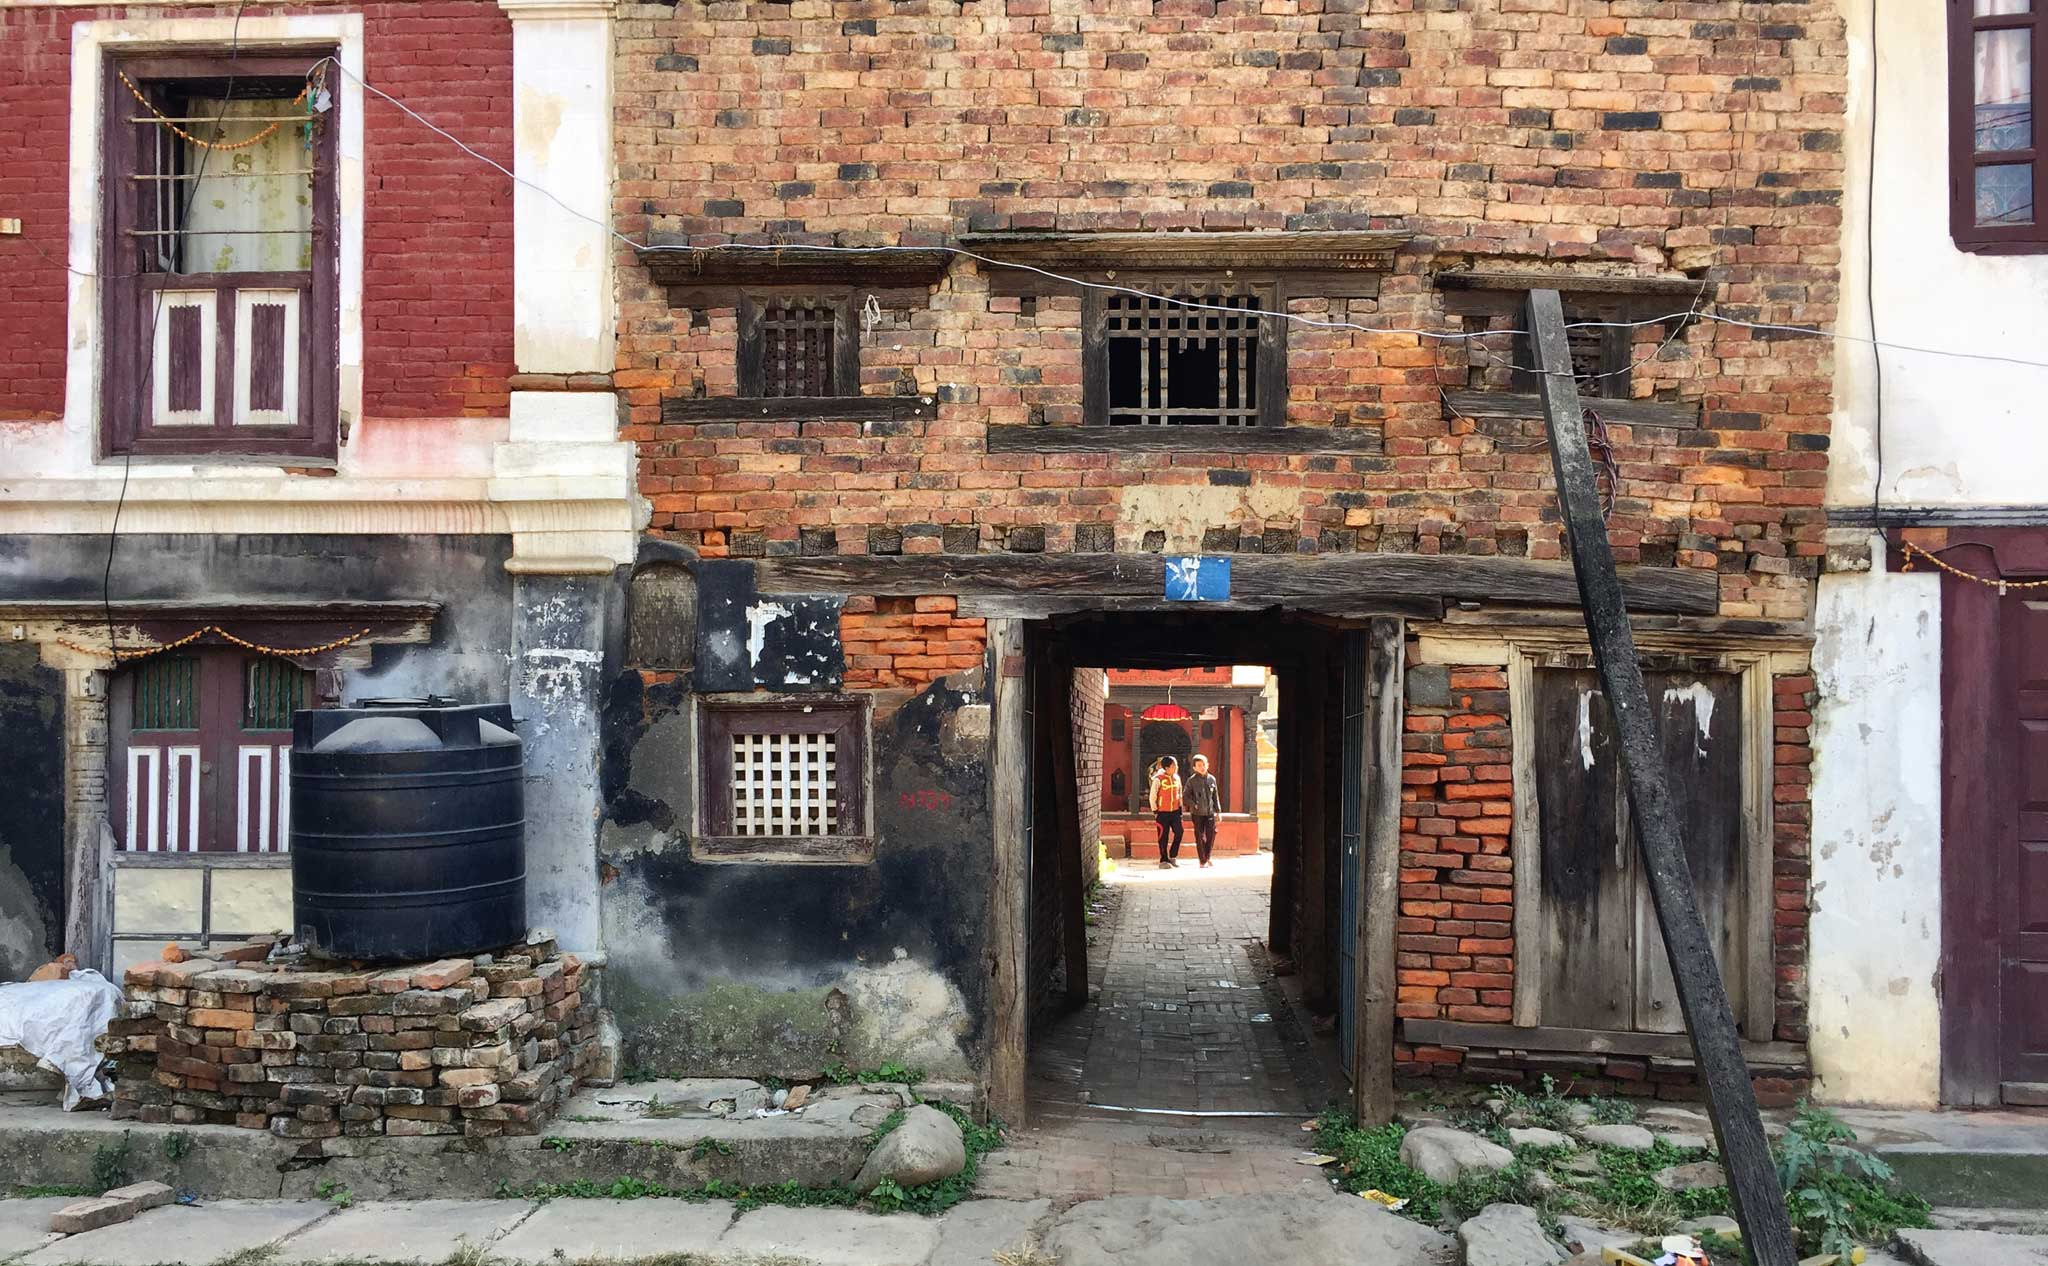 Two young Nepalis seen through a portal in an earthquake damaged building in Patan. | Image by The Ruggist.